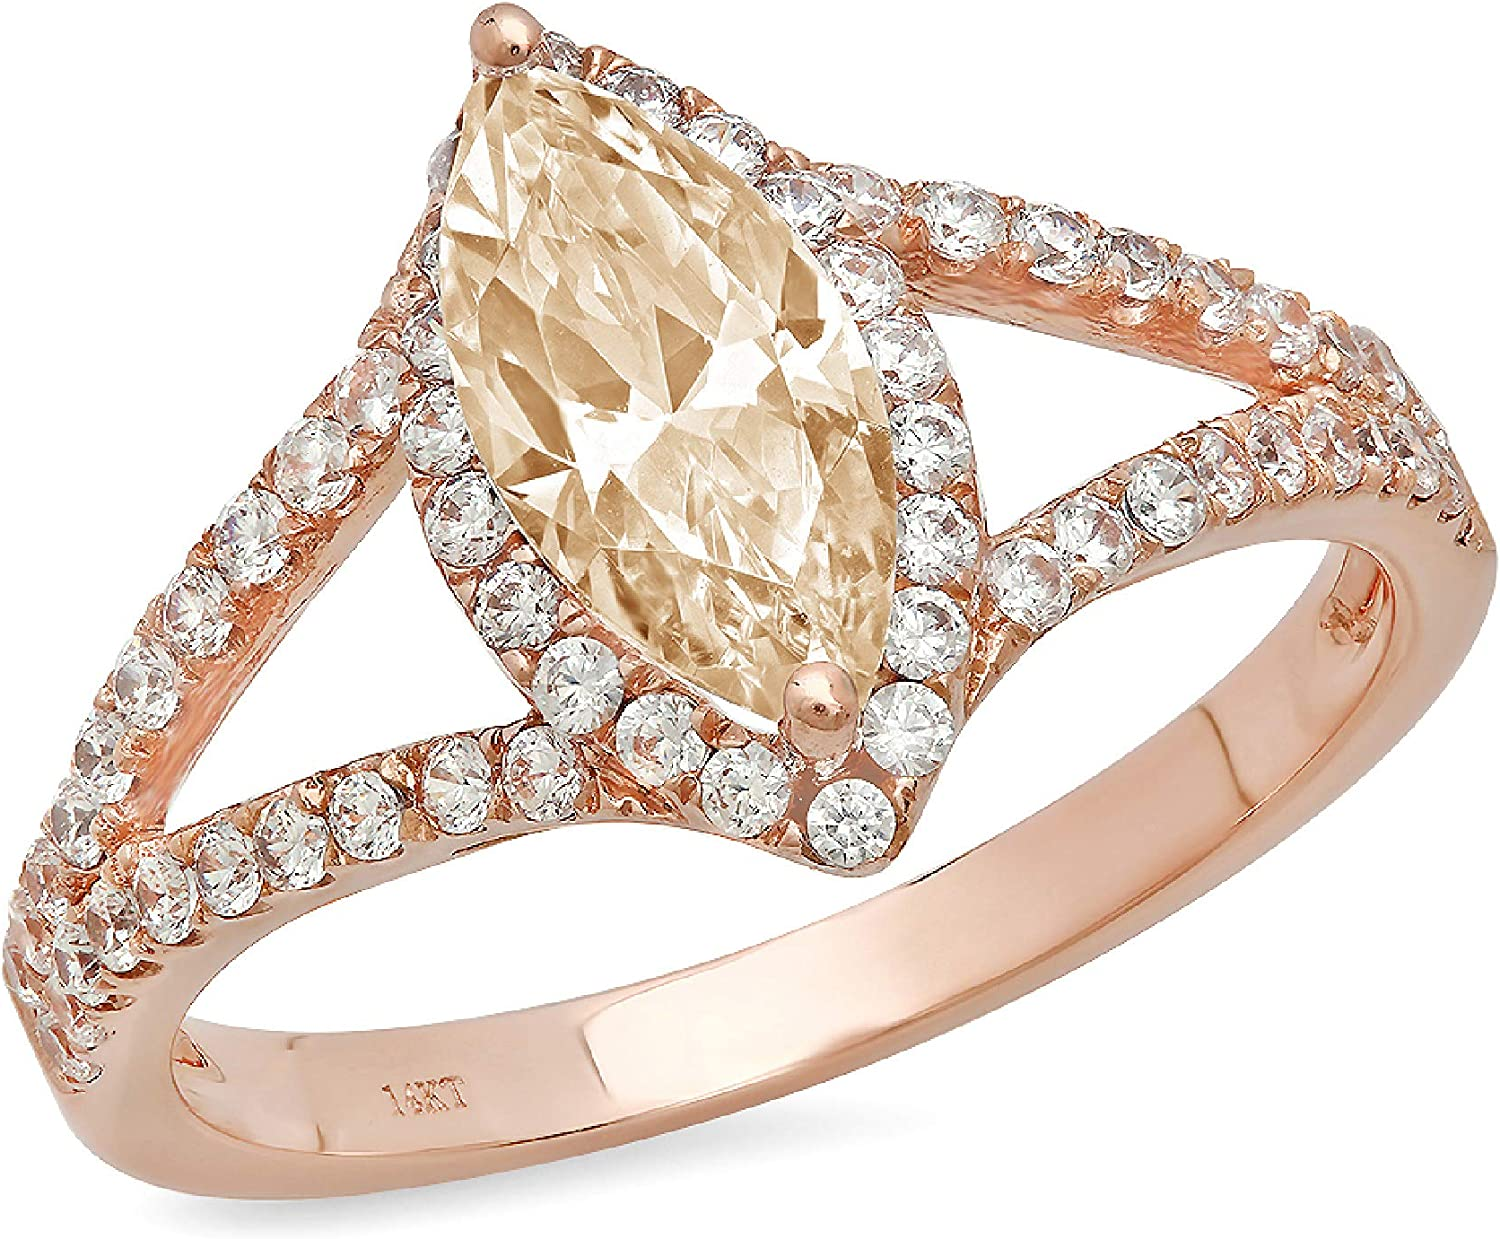 1.20 ct Marquise Cut Solitaire with Accent split shank Halo Designer Genuine Natural Morganite Gemstone Ideal Engagement Promise Statement Anniversary Bridal Wedding Ring 14k Rose Pink Gold